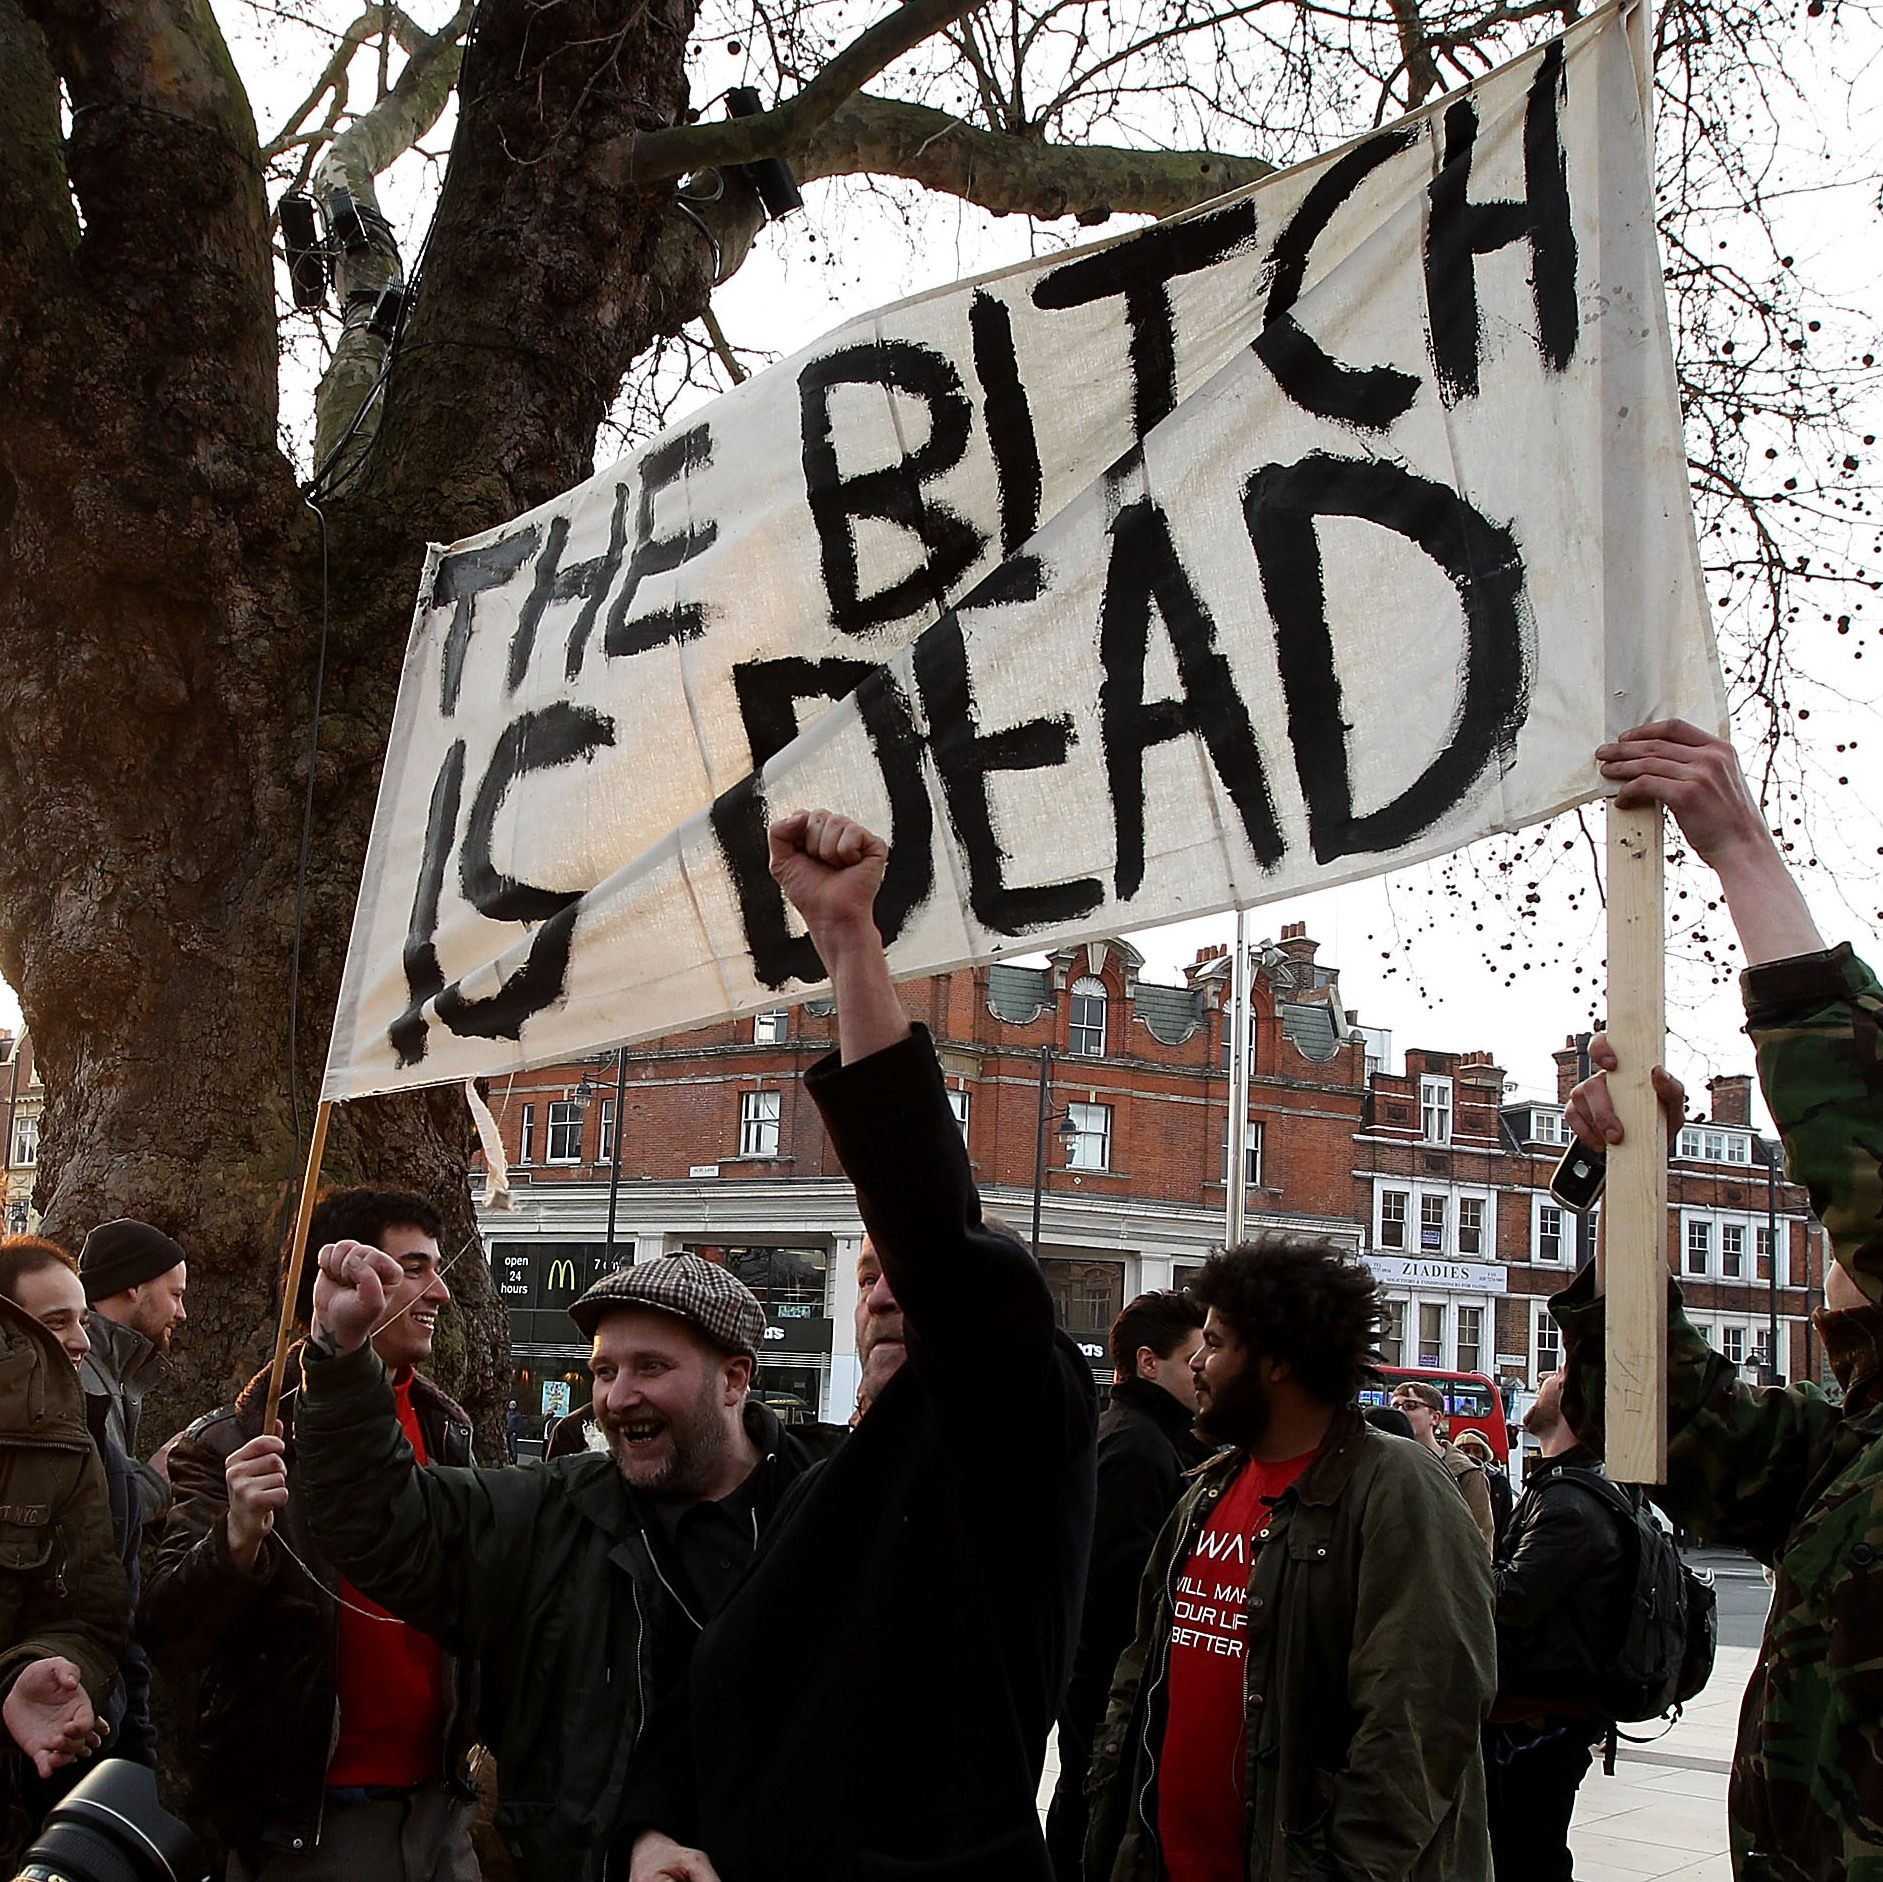 People hold banners Monday celebrating Thatcher's death in the London neighborhood of Brixton.